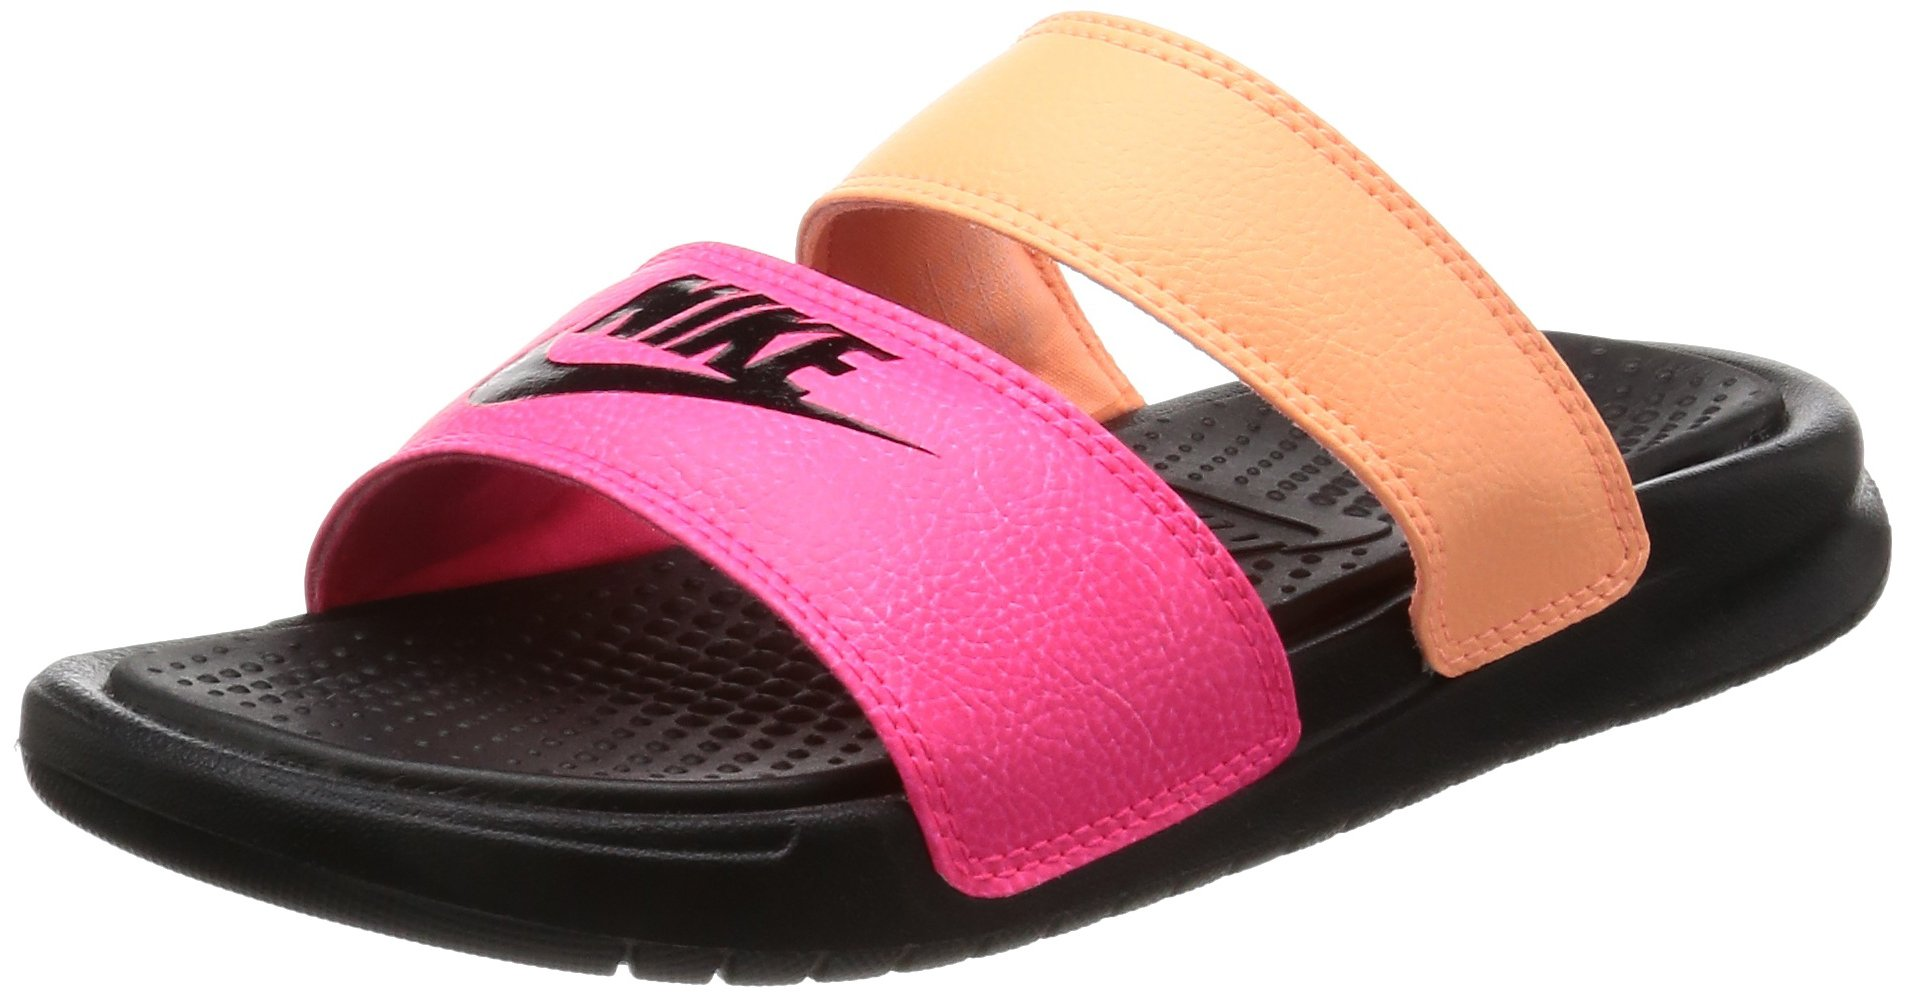 8a9fc6c4f Galleon - Nike Womens Benassi Duo Ultra Slide Snadals Racer  Pink Black Sunset Glow 819717-602 (8 B(M) US)